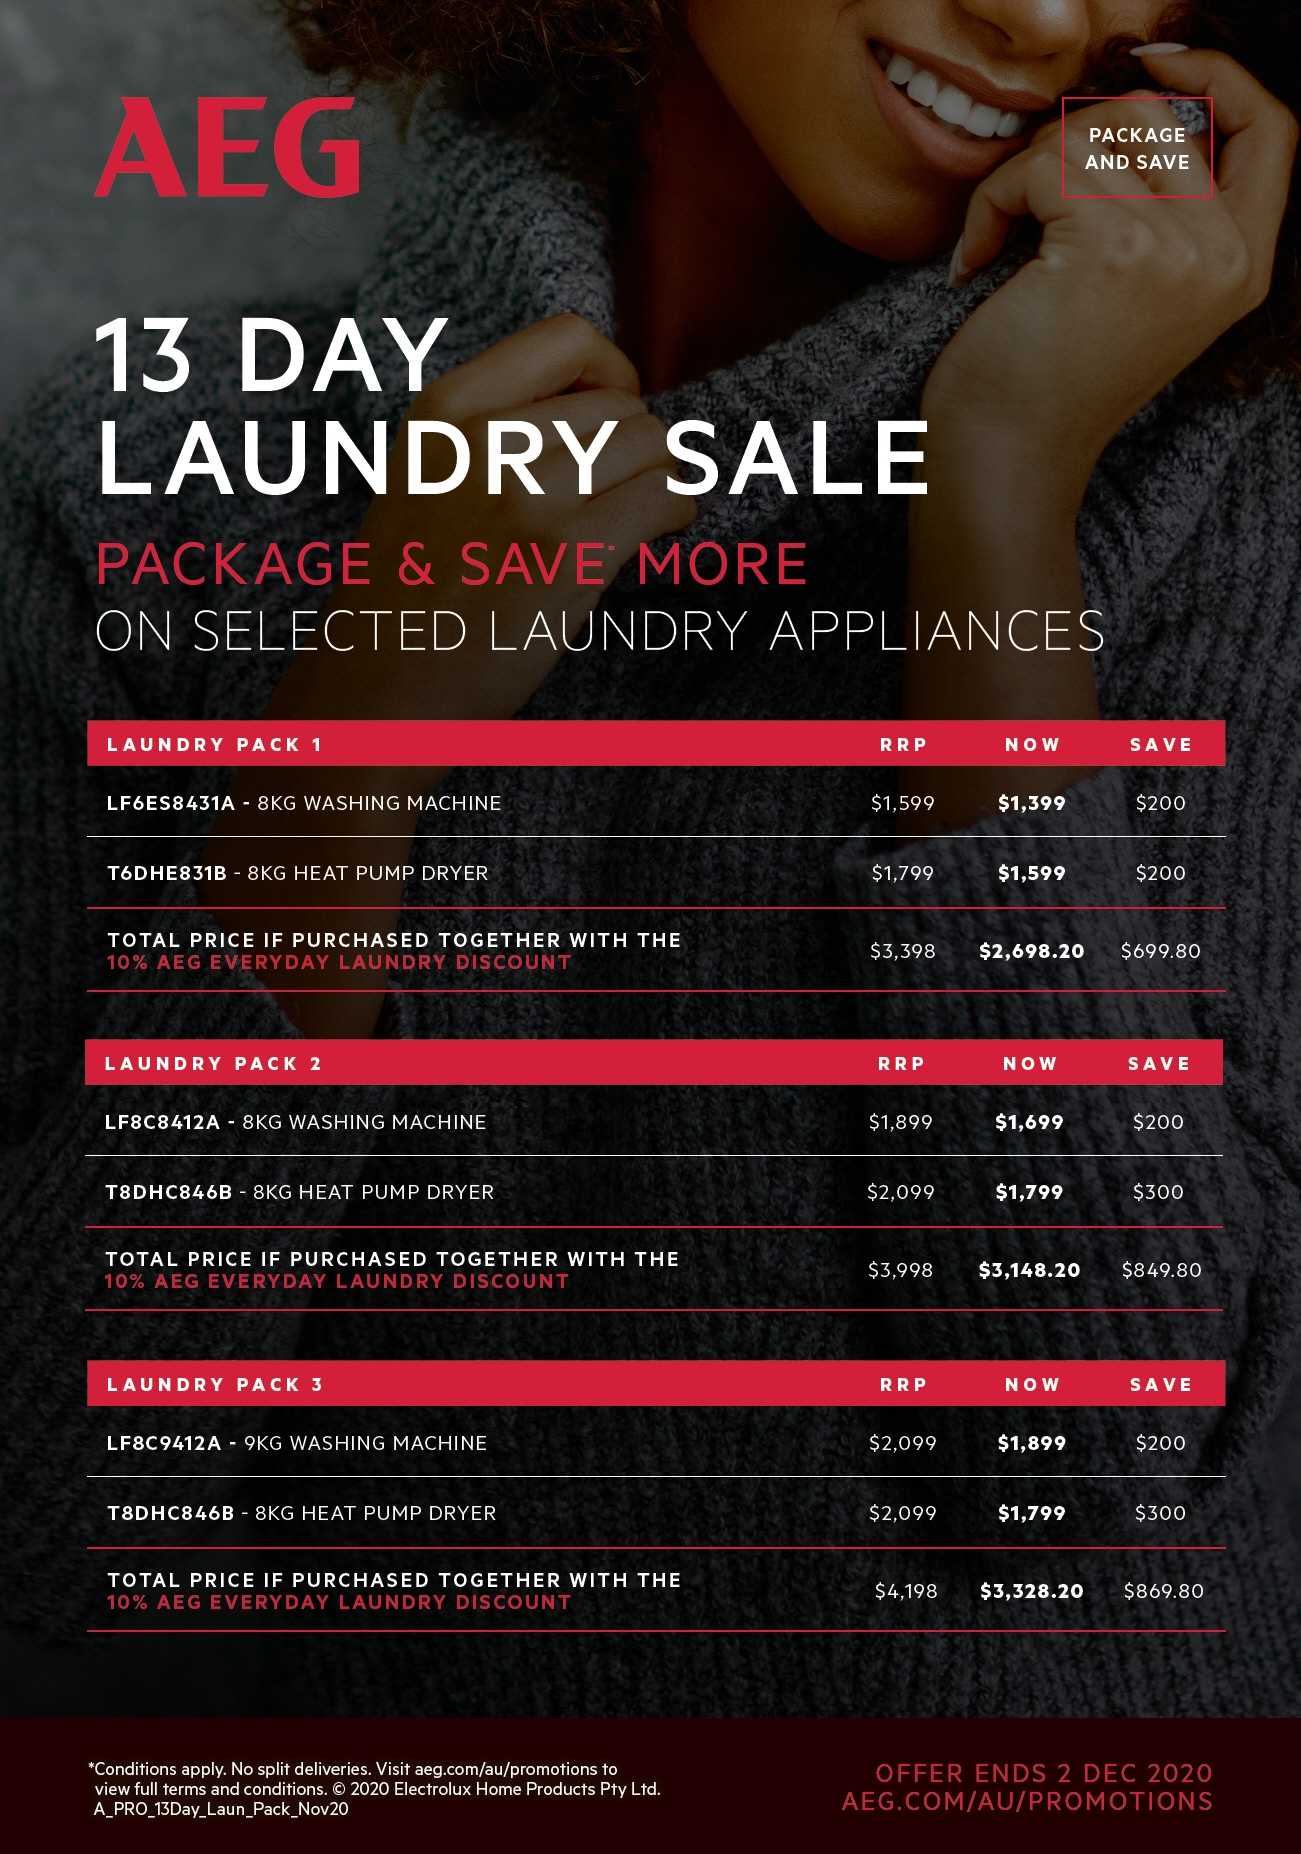 AEG 11 Day Laundry Package Sale Nov 2020